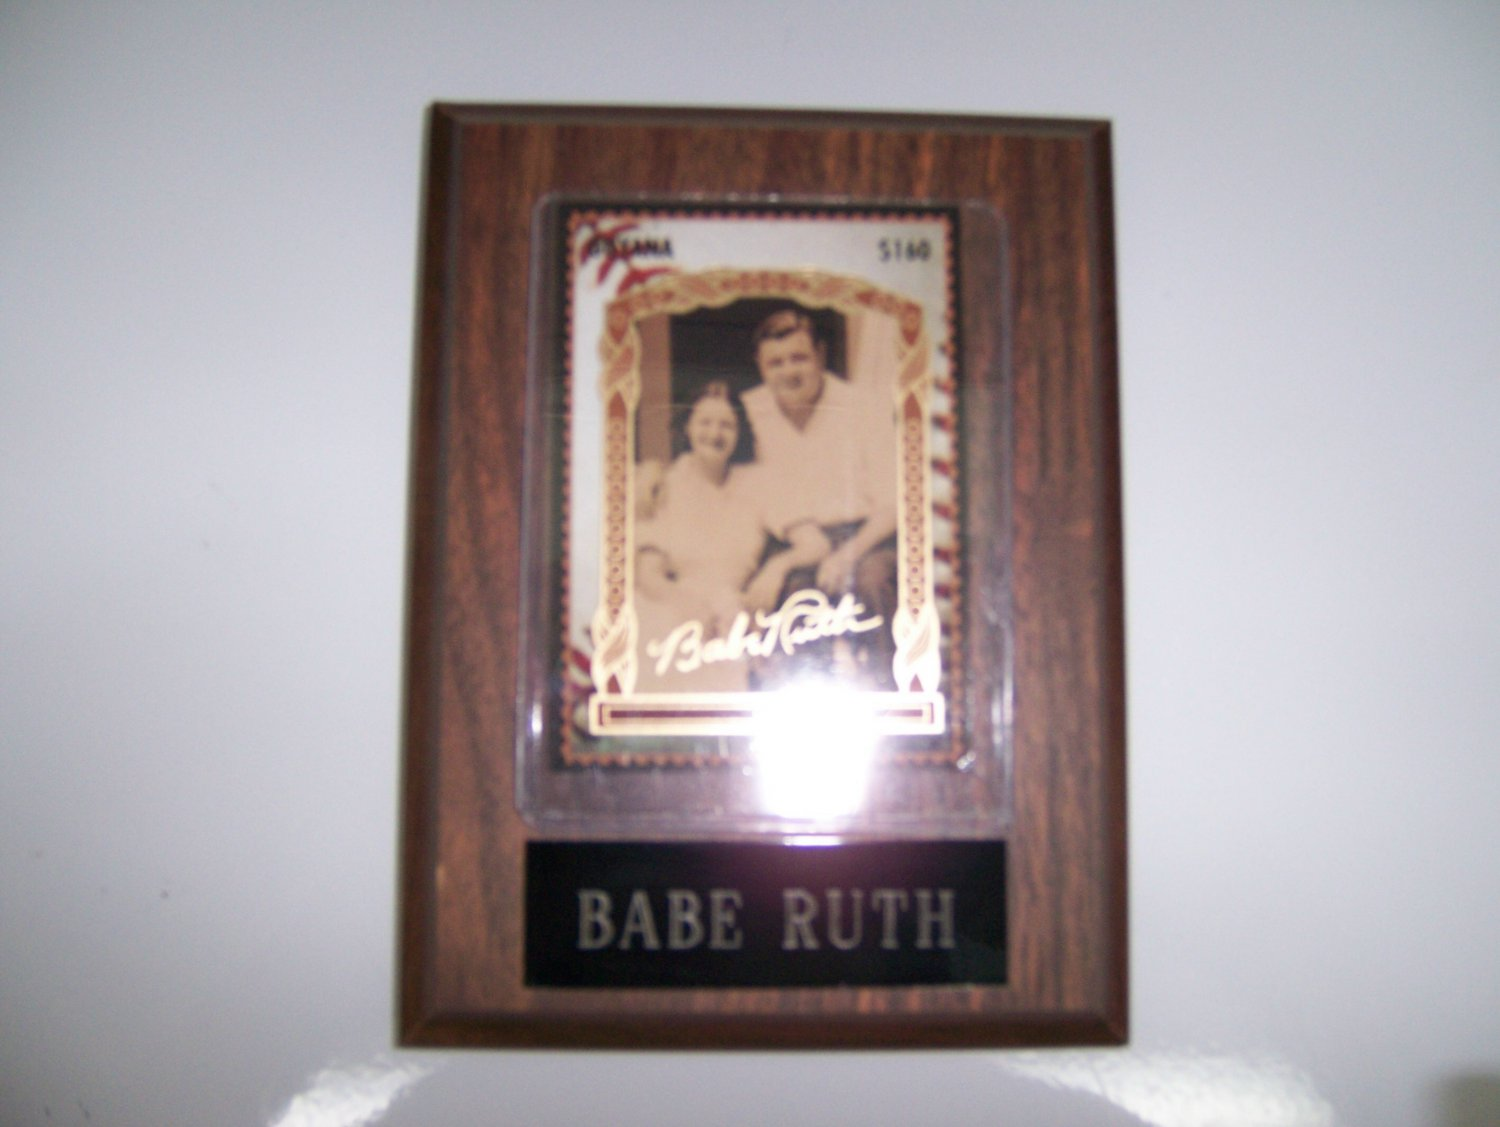 Babe Ruth & Lady Plaque Autographed by BabeRuth BNK1157